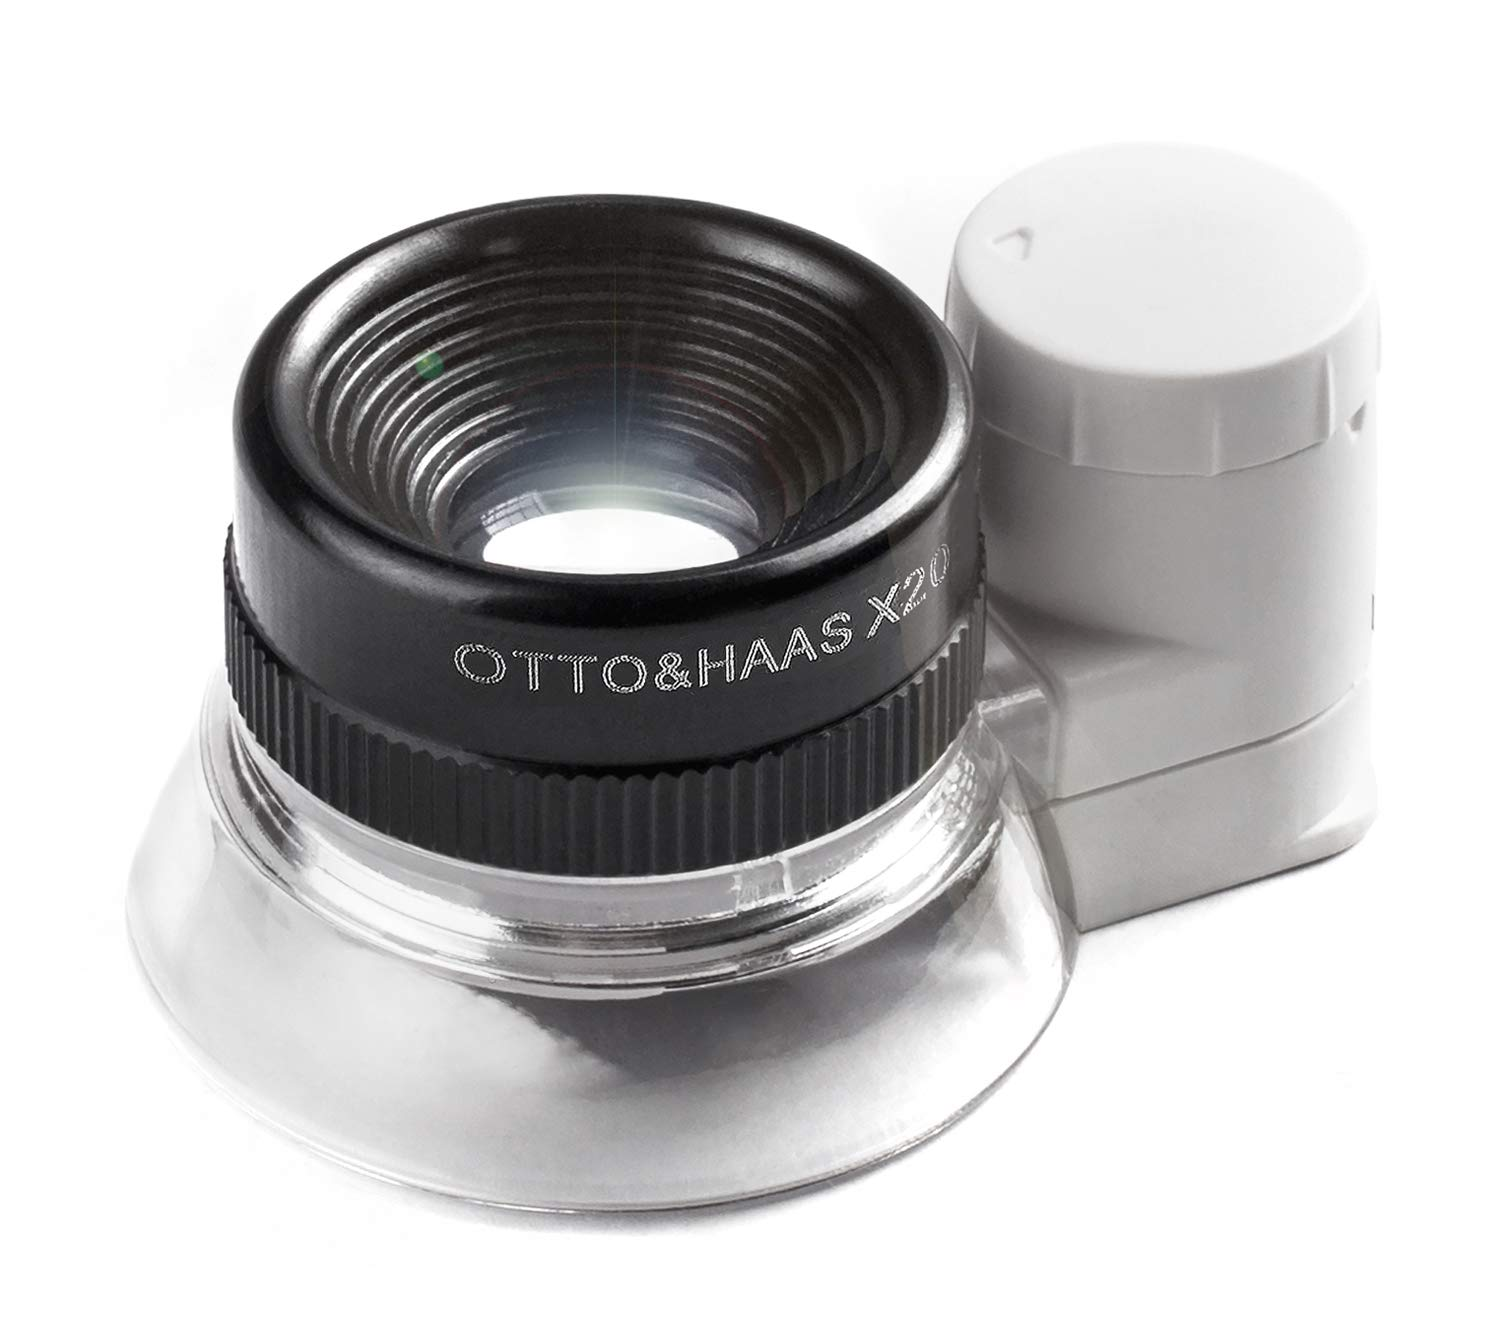 Otto&Haas Lighted Jeweler's Loupe Magnifier - 6 LED Illuminated 20X Magnification Loop, Scope Lupe with Light for Coin Collection Supplies, Stamp Collecting, Eye-Piece for Close Work, Collector's Gift by Otto&Haas